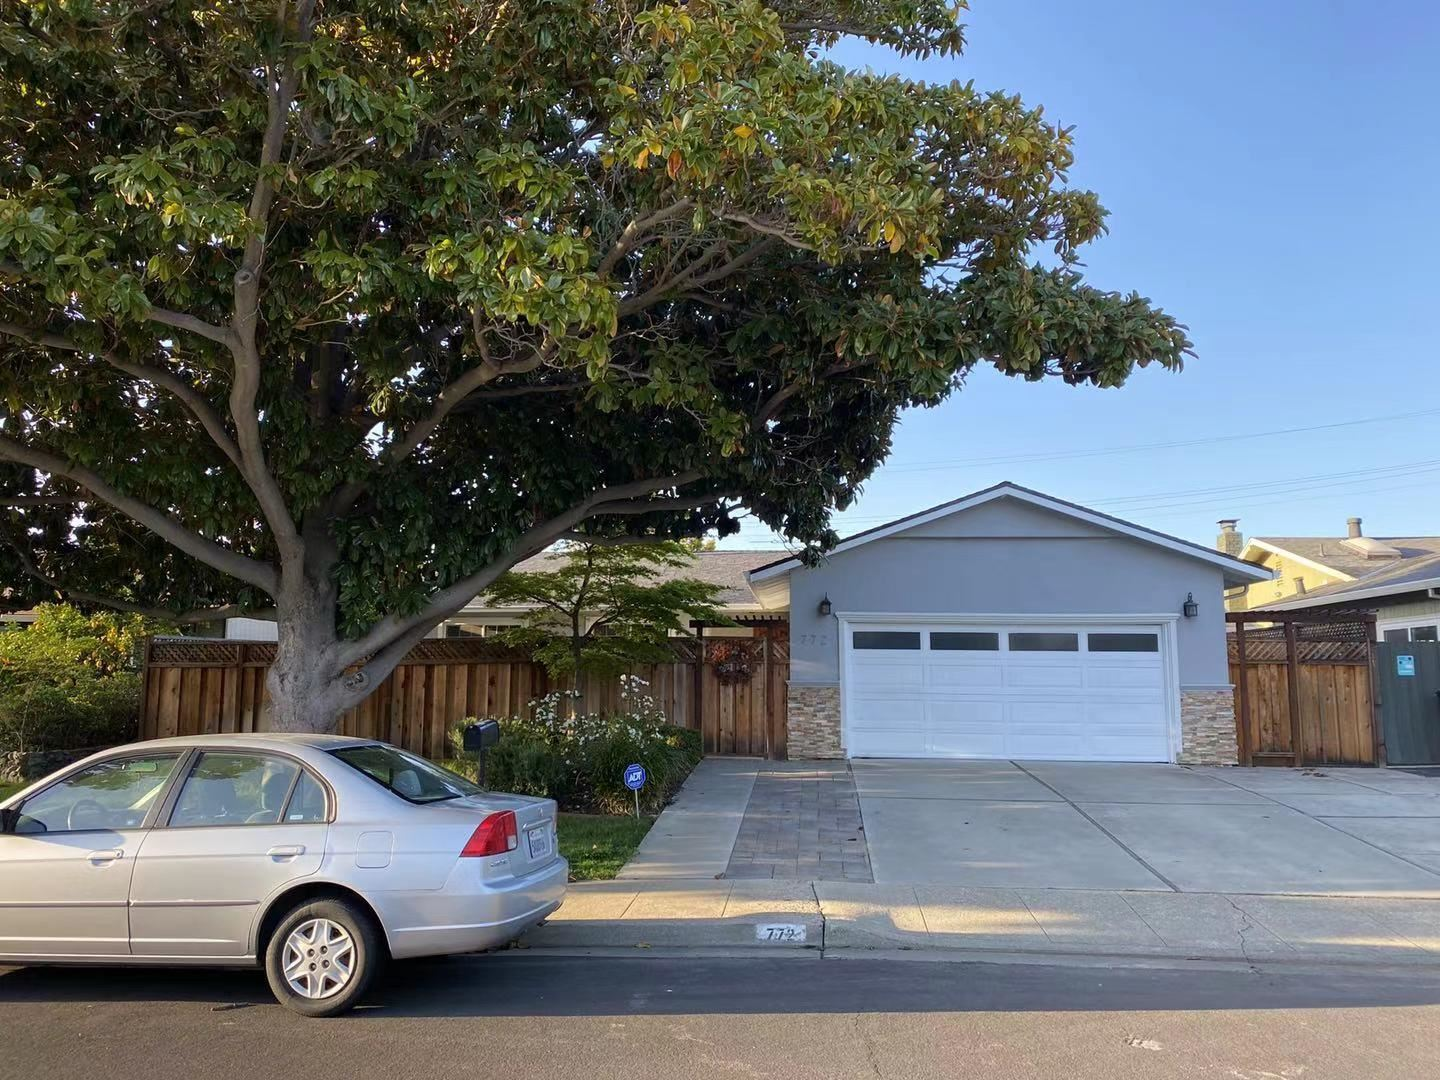 Photo for 772 San Carlos AVE, MOUNTAIN VIEW, CA 94043 (MLS # ML81837538)